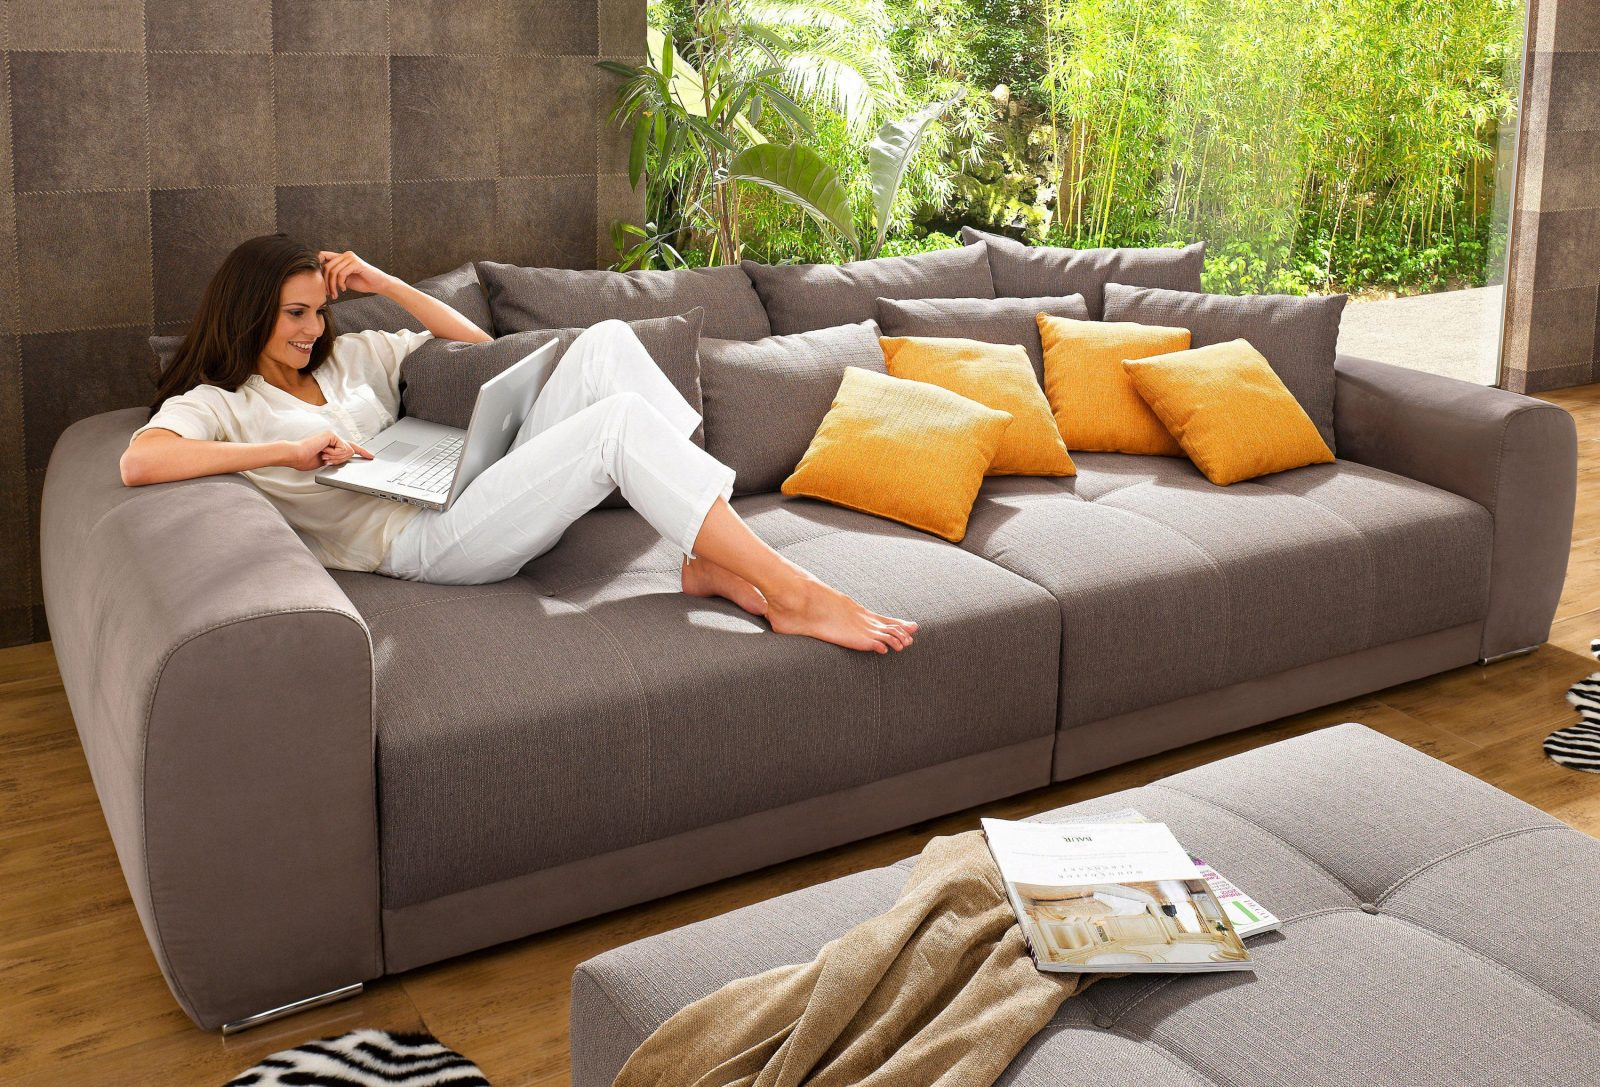 Architektur Pvc Gunstig Cool Big Sofa Günstig Kaufen